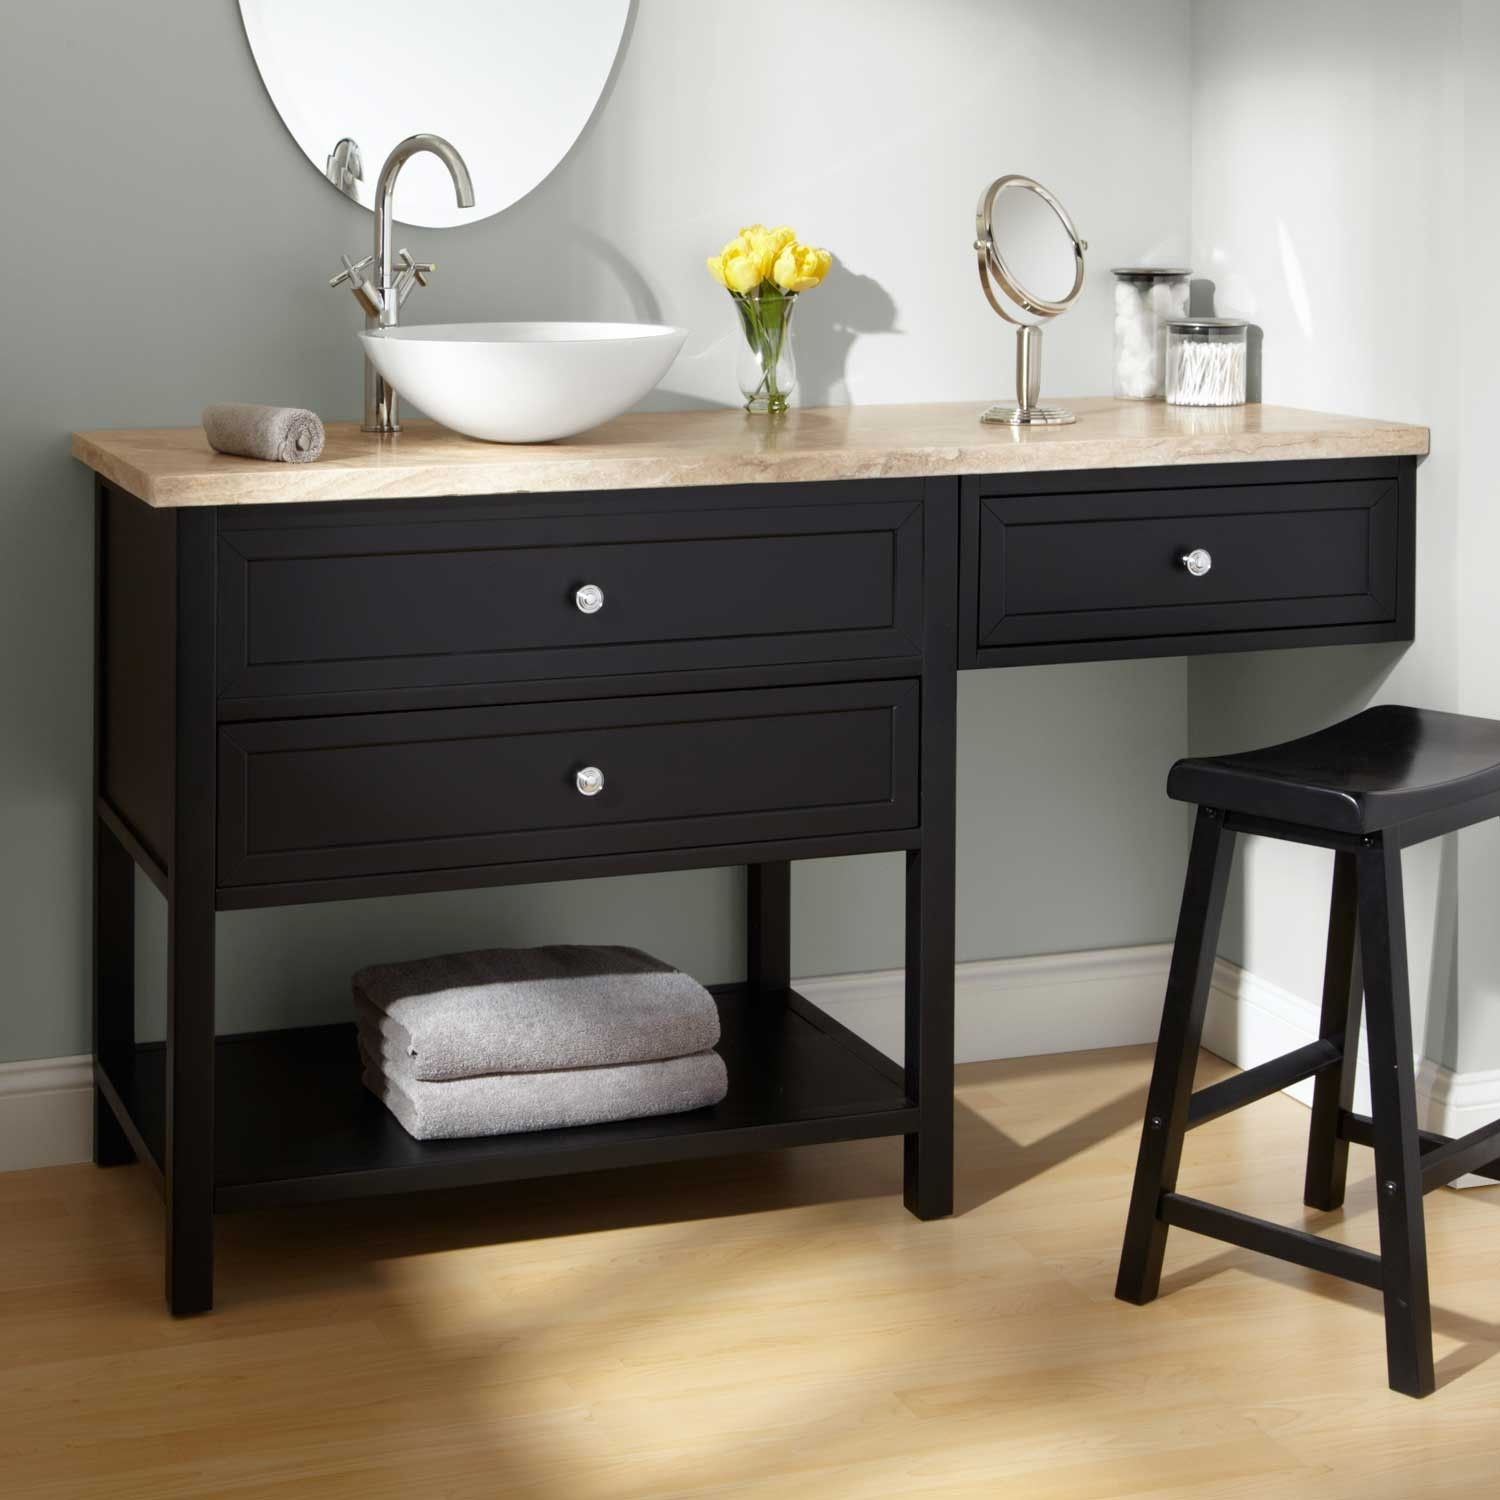 Bathroom Makeup Vanity And Chair |  Sink Vanities / 60